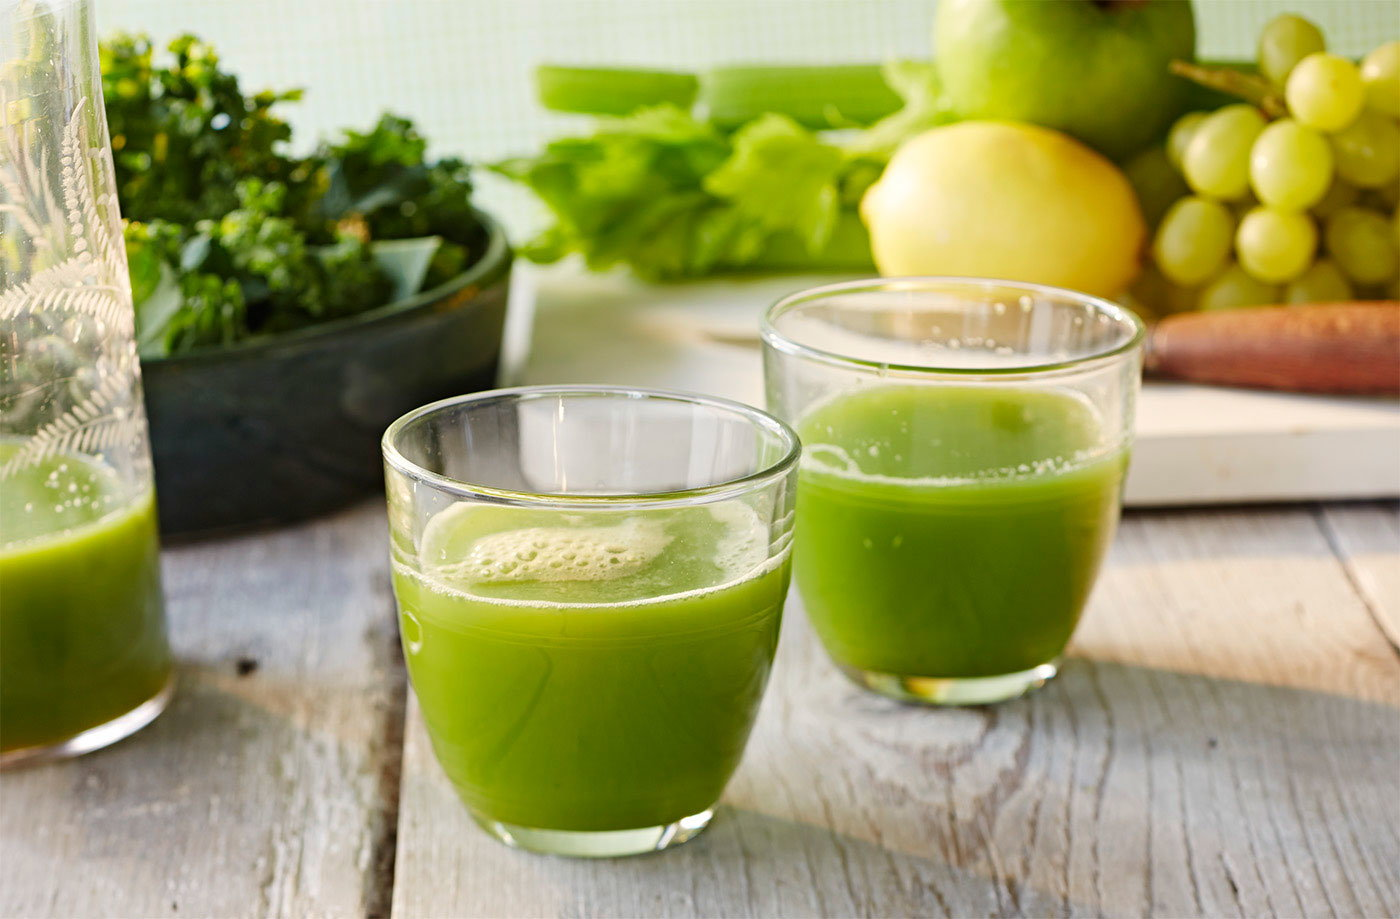 The green zinger recipe